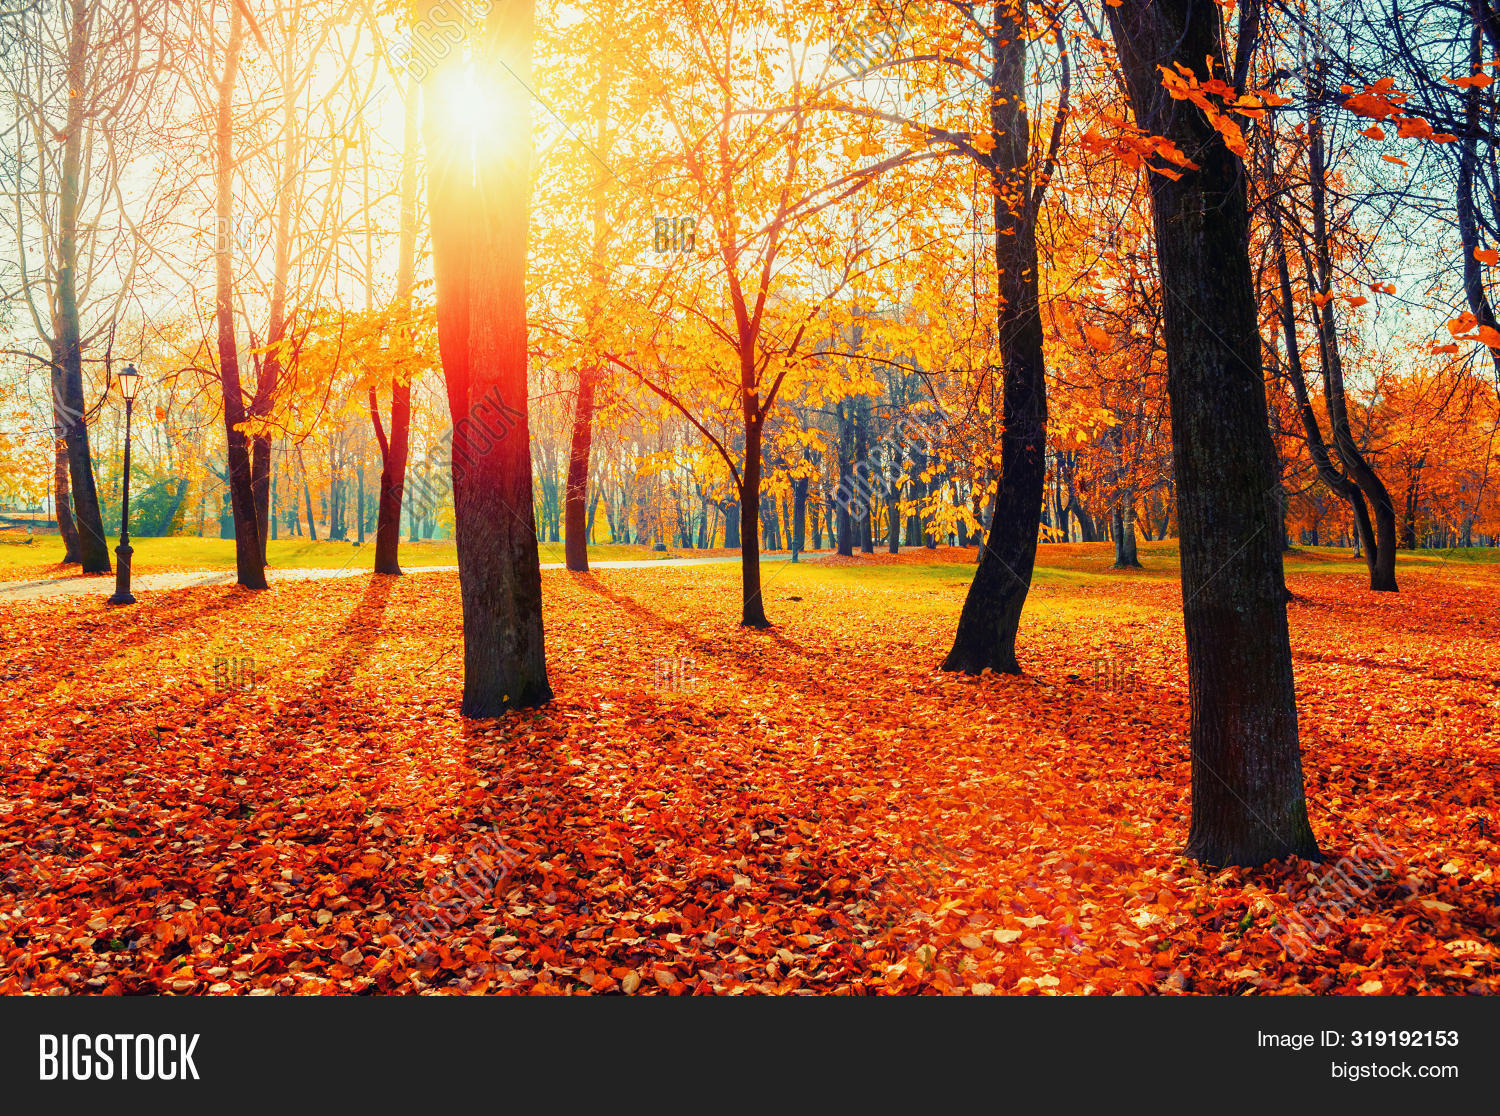 Autumn picturesque park landscape. Autumn trees with yellowed foliage in October morning autumn park. Colorful autumn landscape in bright tones, autumn park scenery